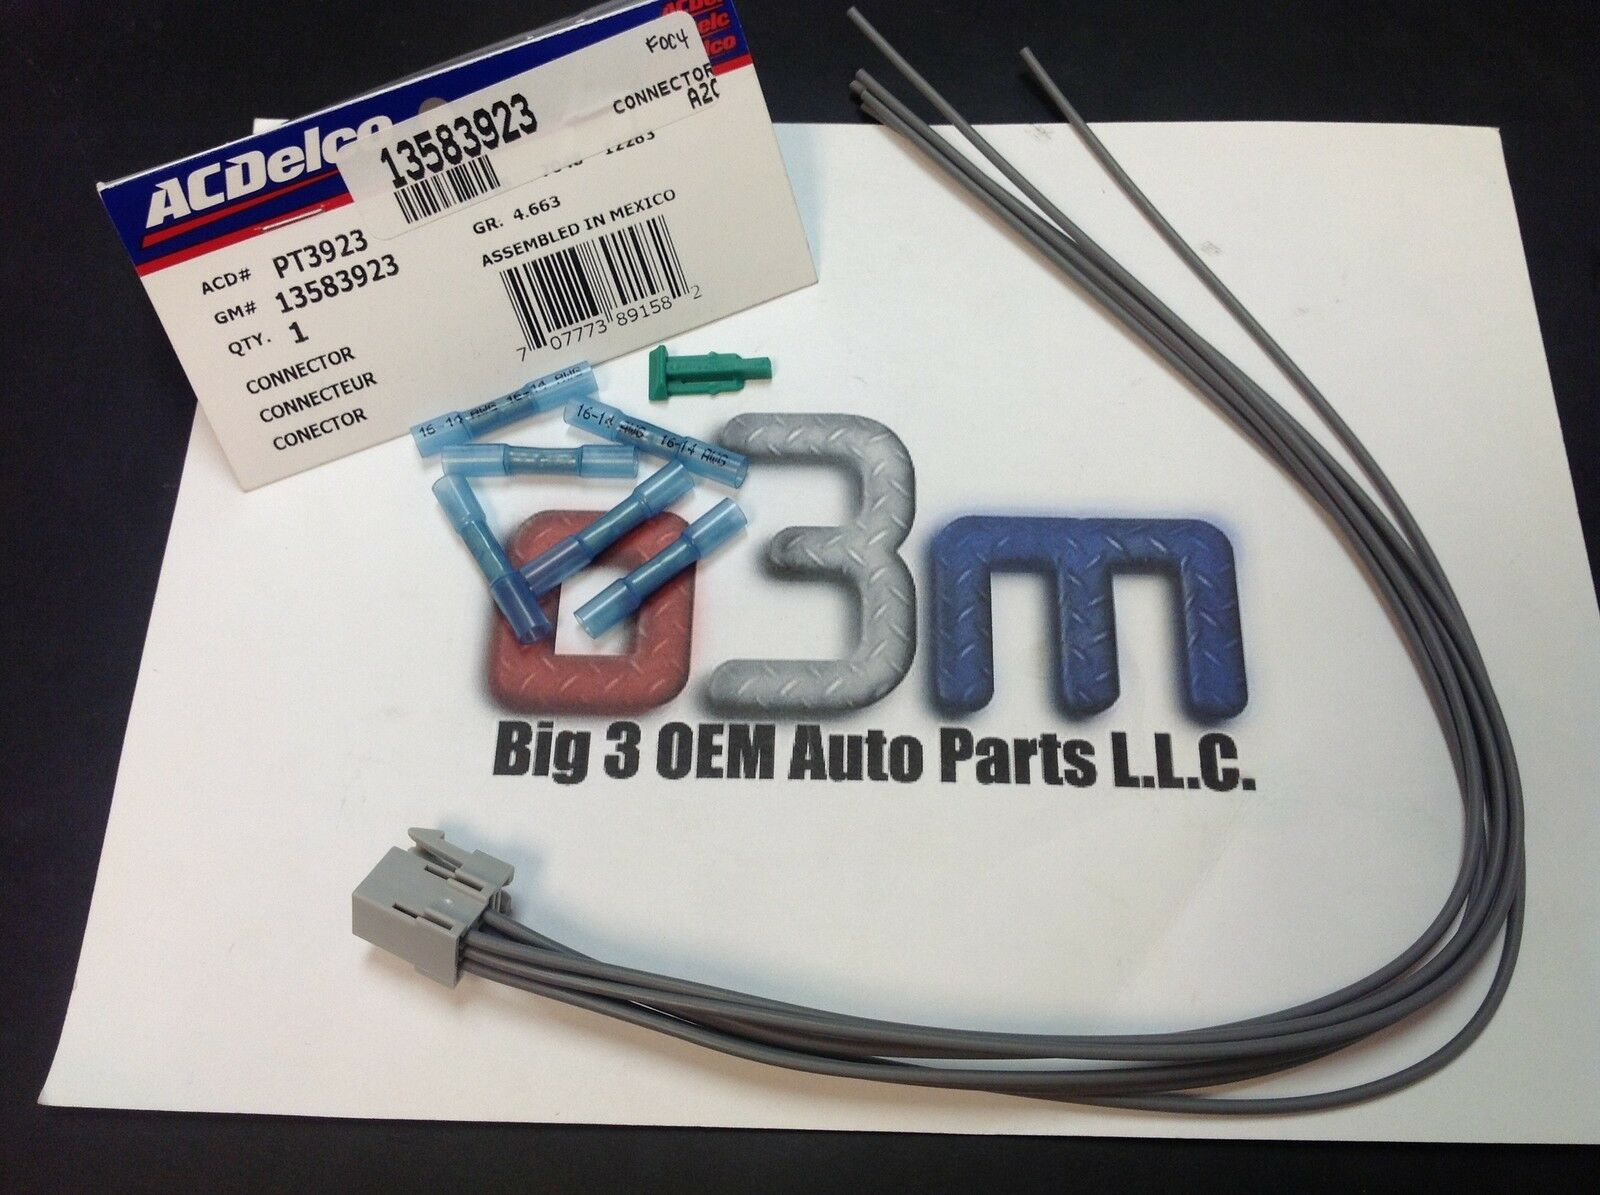 Chevrolet Impala Monte Carlo Automatic Transmission Shifter Wire Oem Gm Wiring Harness New 1 Of 2free Shipping See More